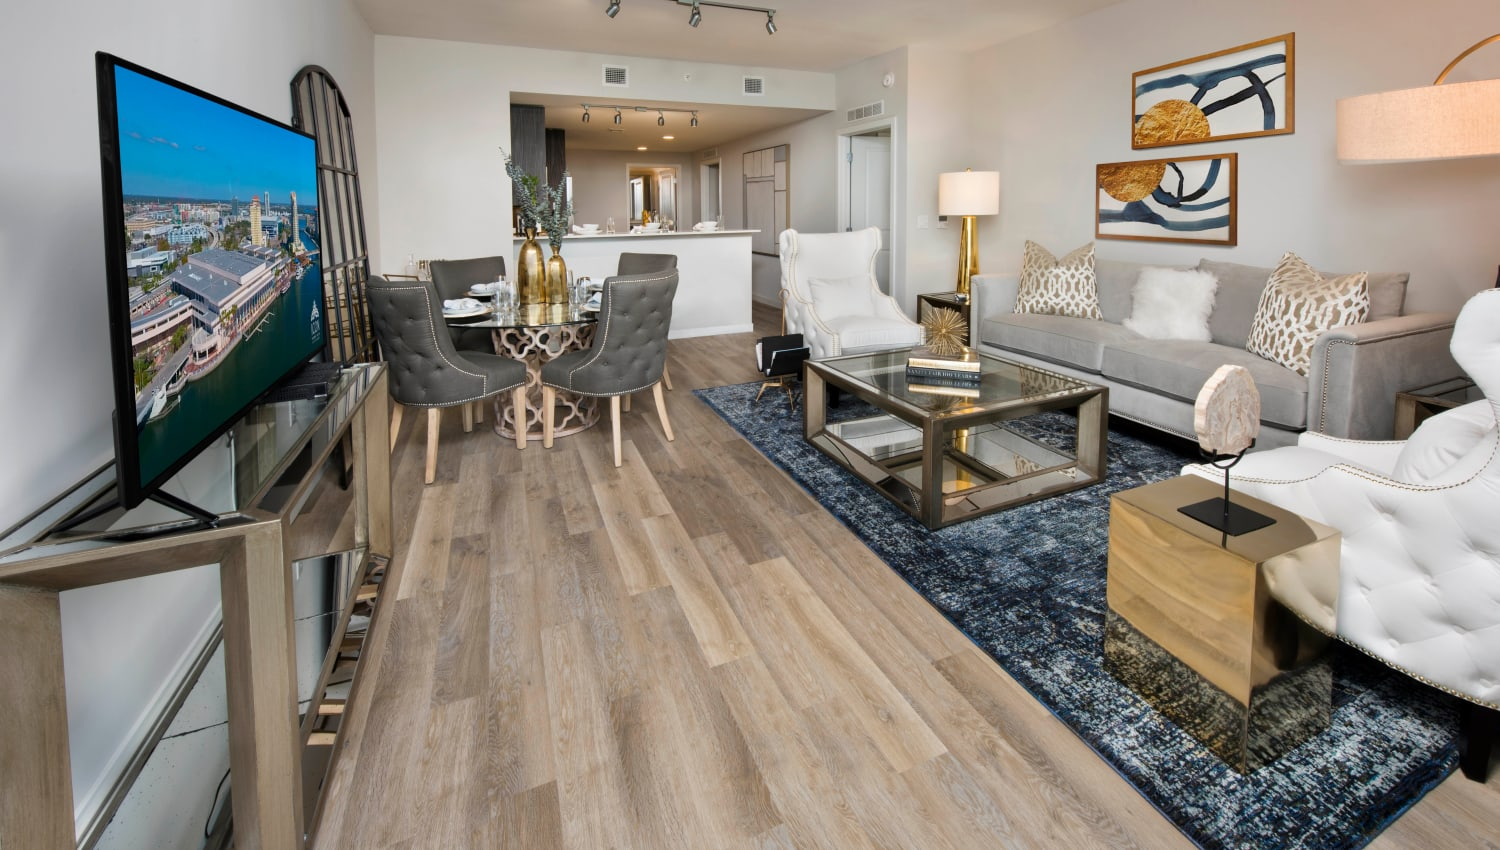 Spacious and well-furnished model home's living area with hardwood floors at Olympus Harbour Island in Tampa, Florida